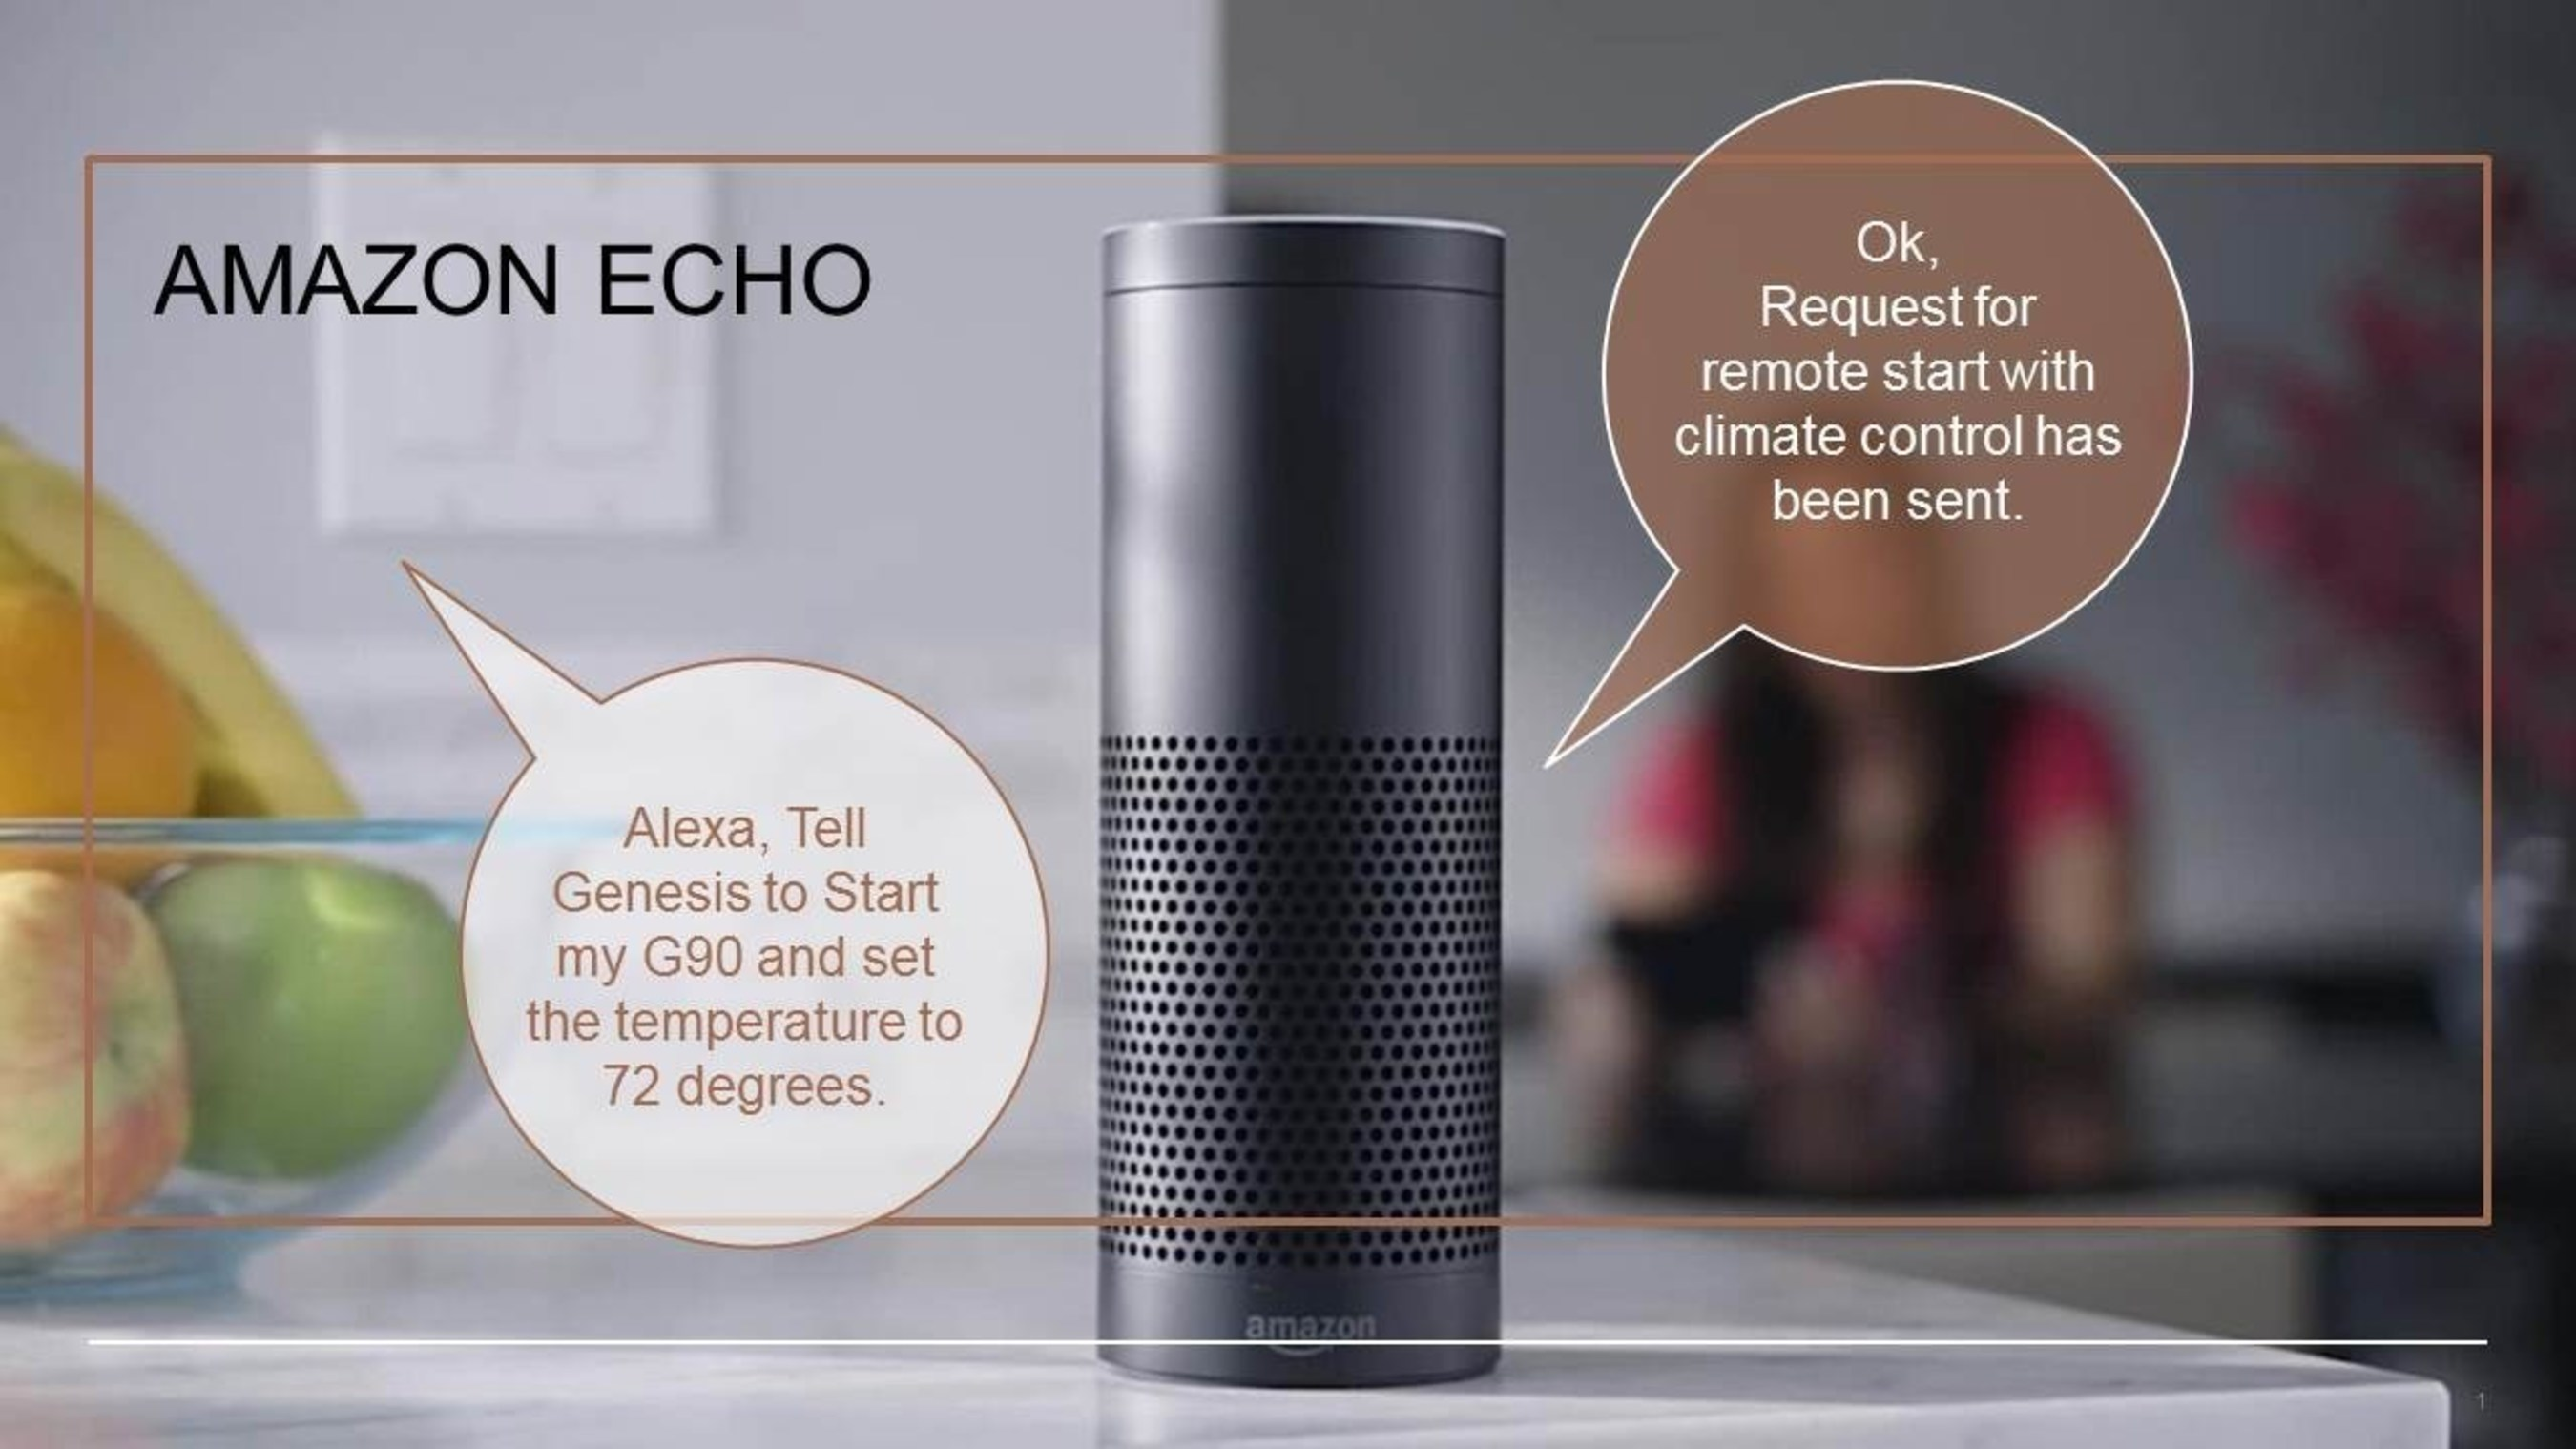 Genesis is the first automaker to launch an Alexa skill, allowing remote voice commands to control connected cars.